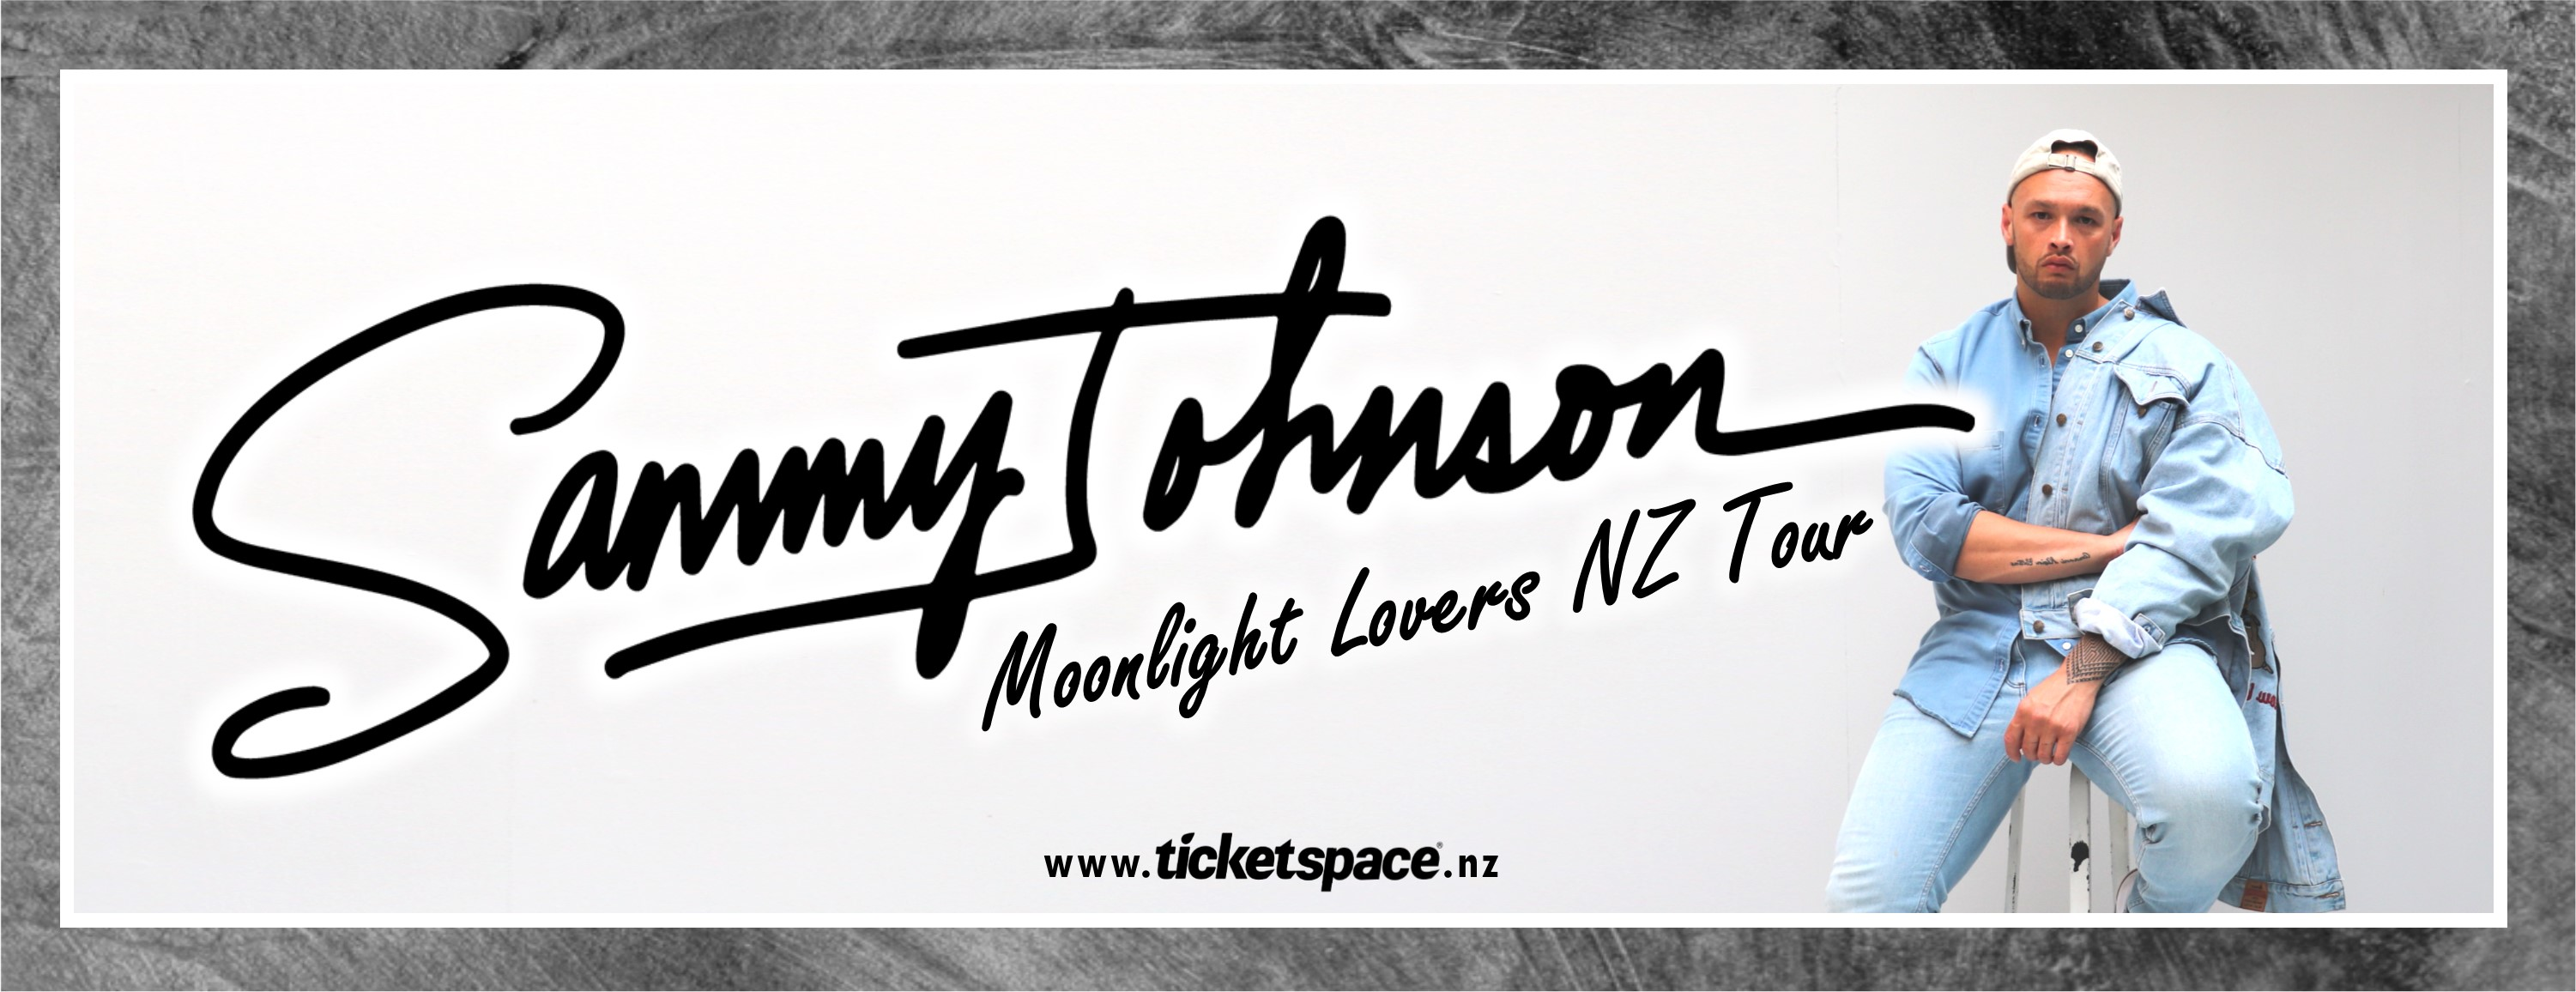 Tickets for SAMMY J - Tokoroa in Tokoroa from Ticketspace